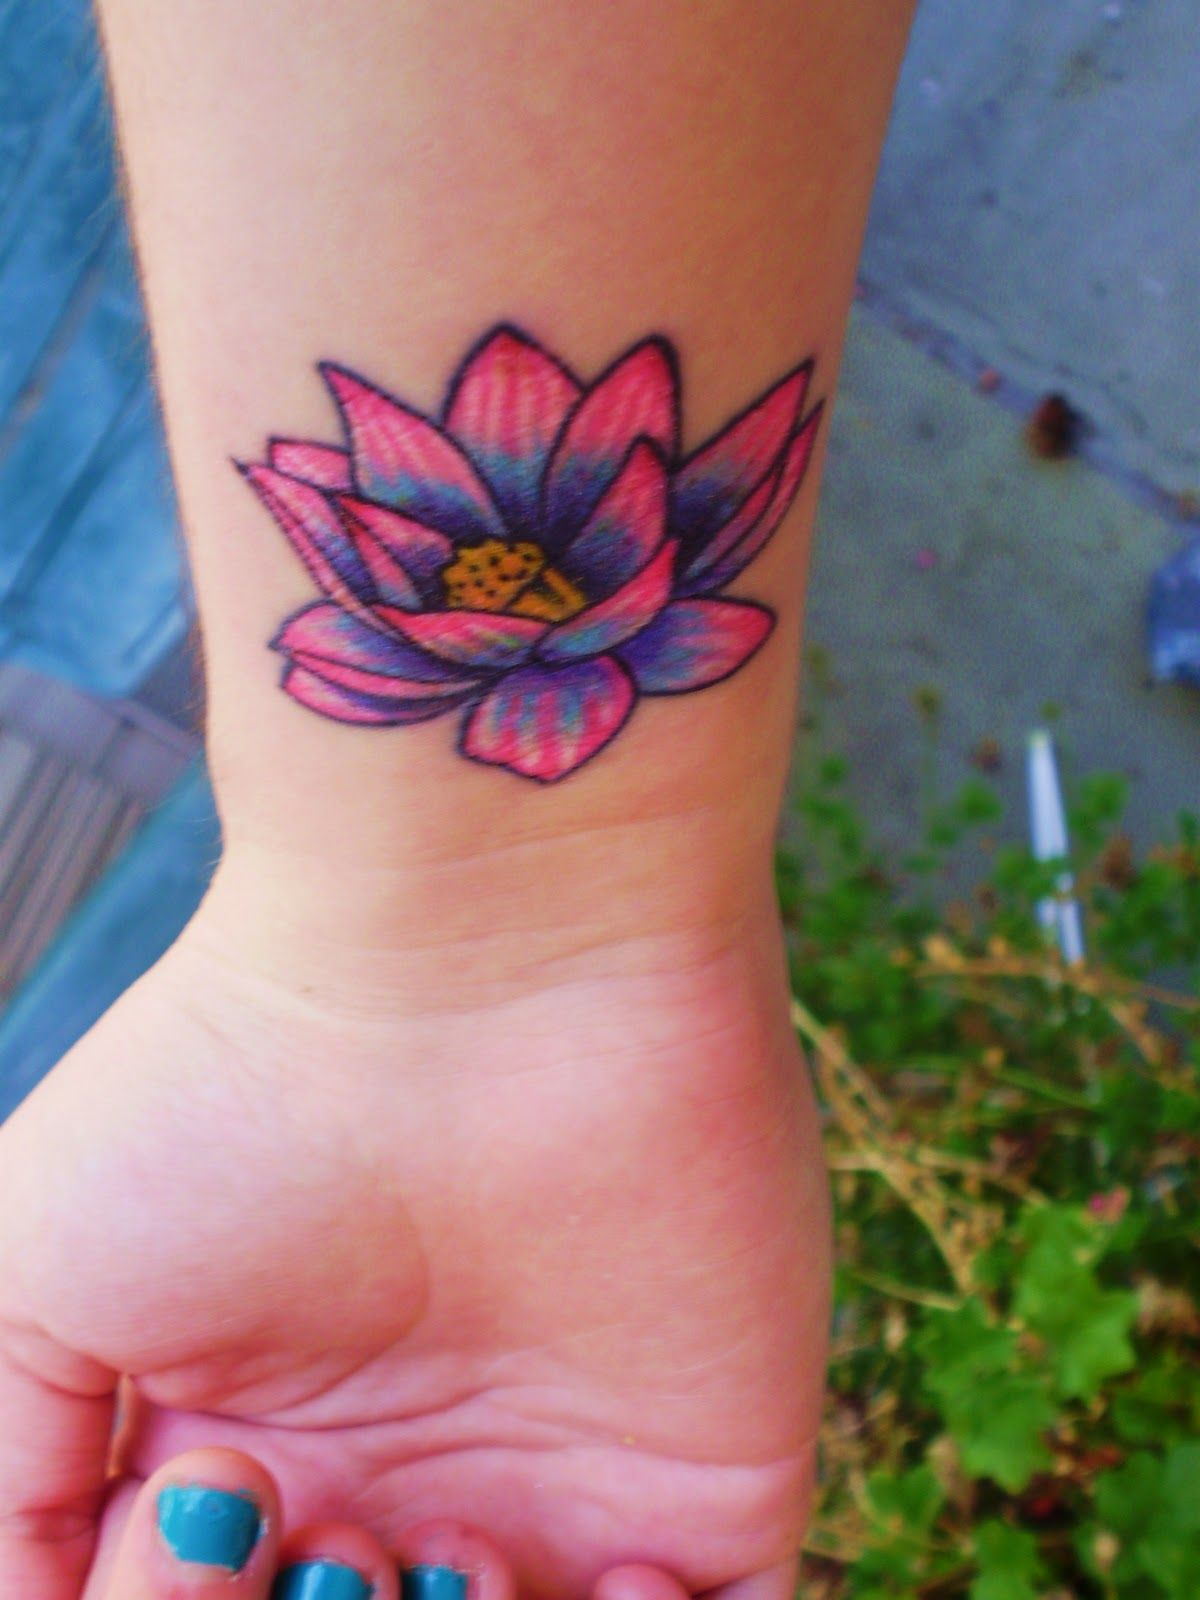 Awesome Water Lily Tattoo 15 Inspiration With Water Lily Tattoo